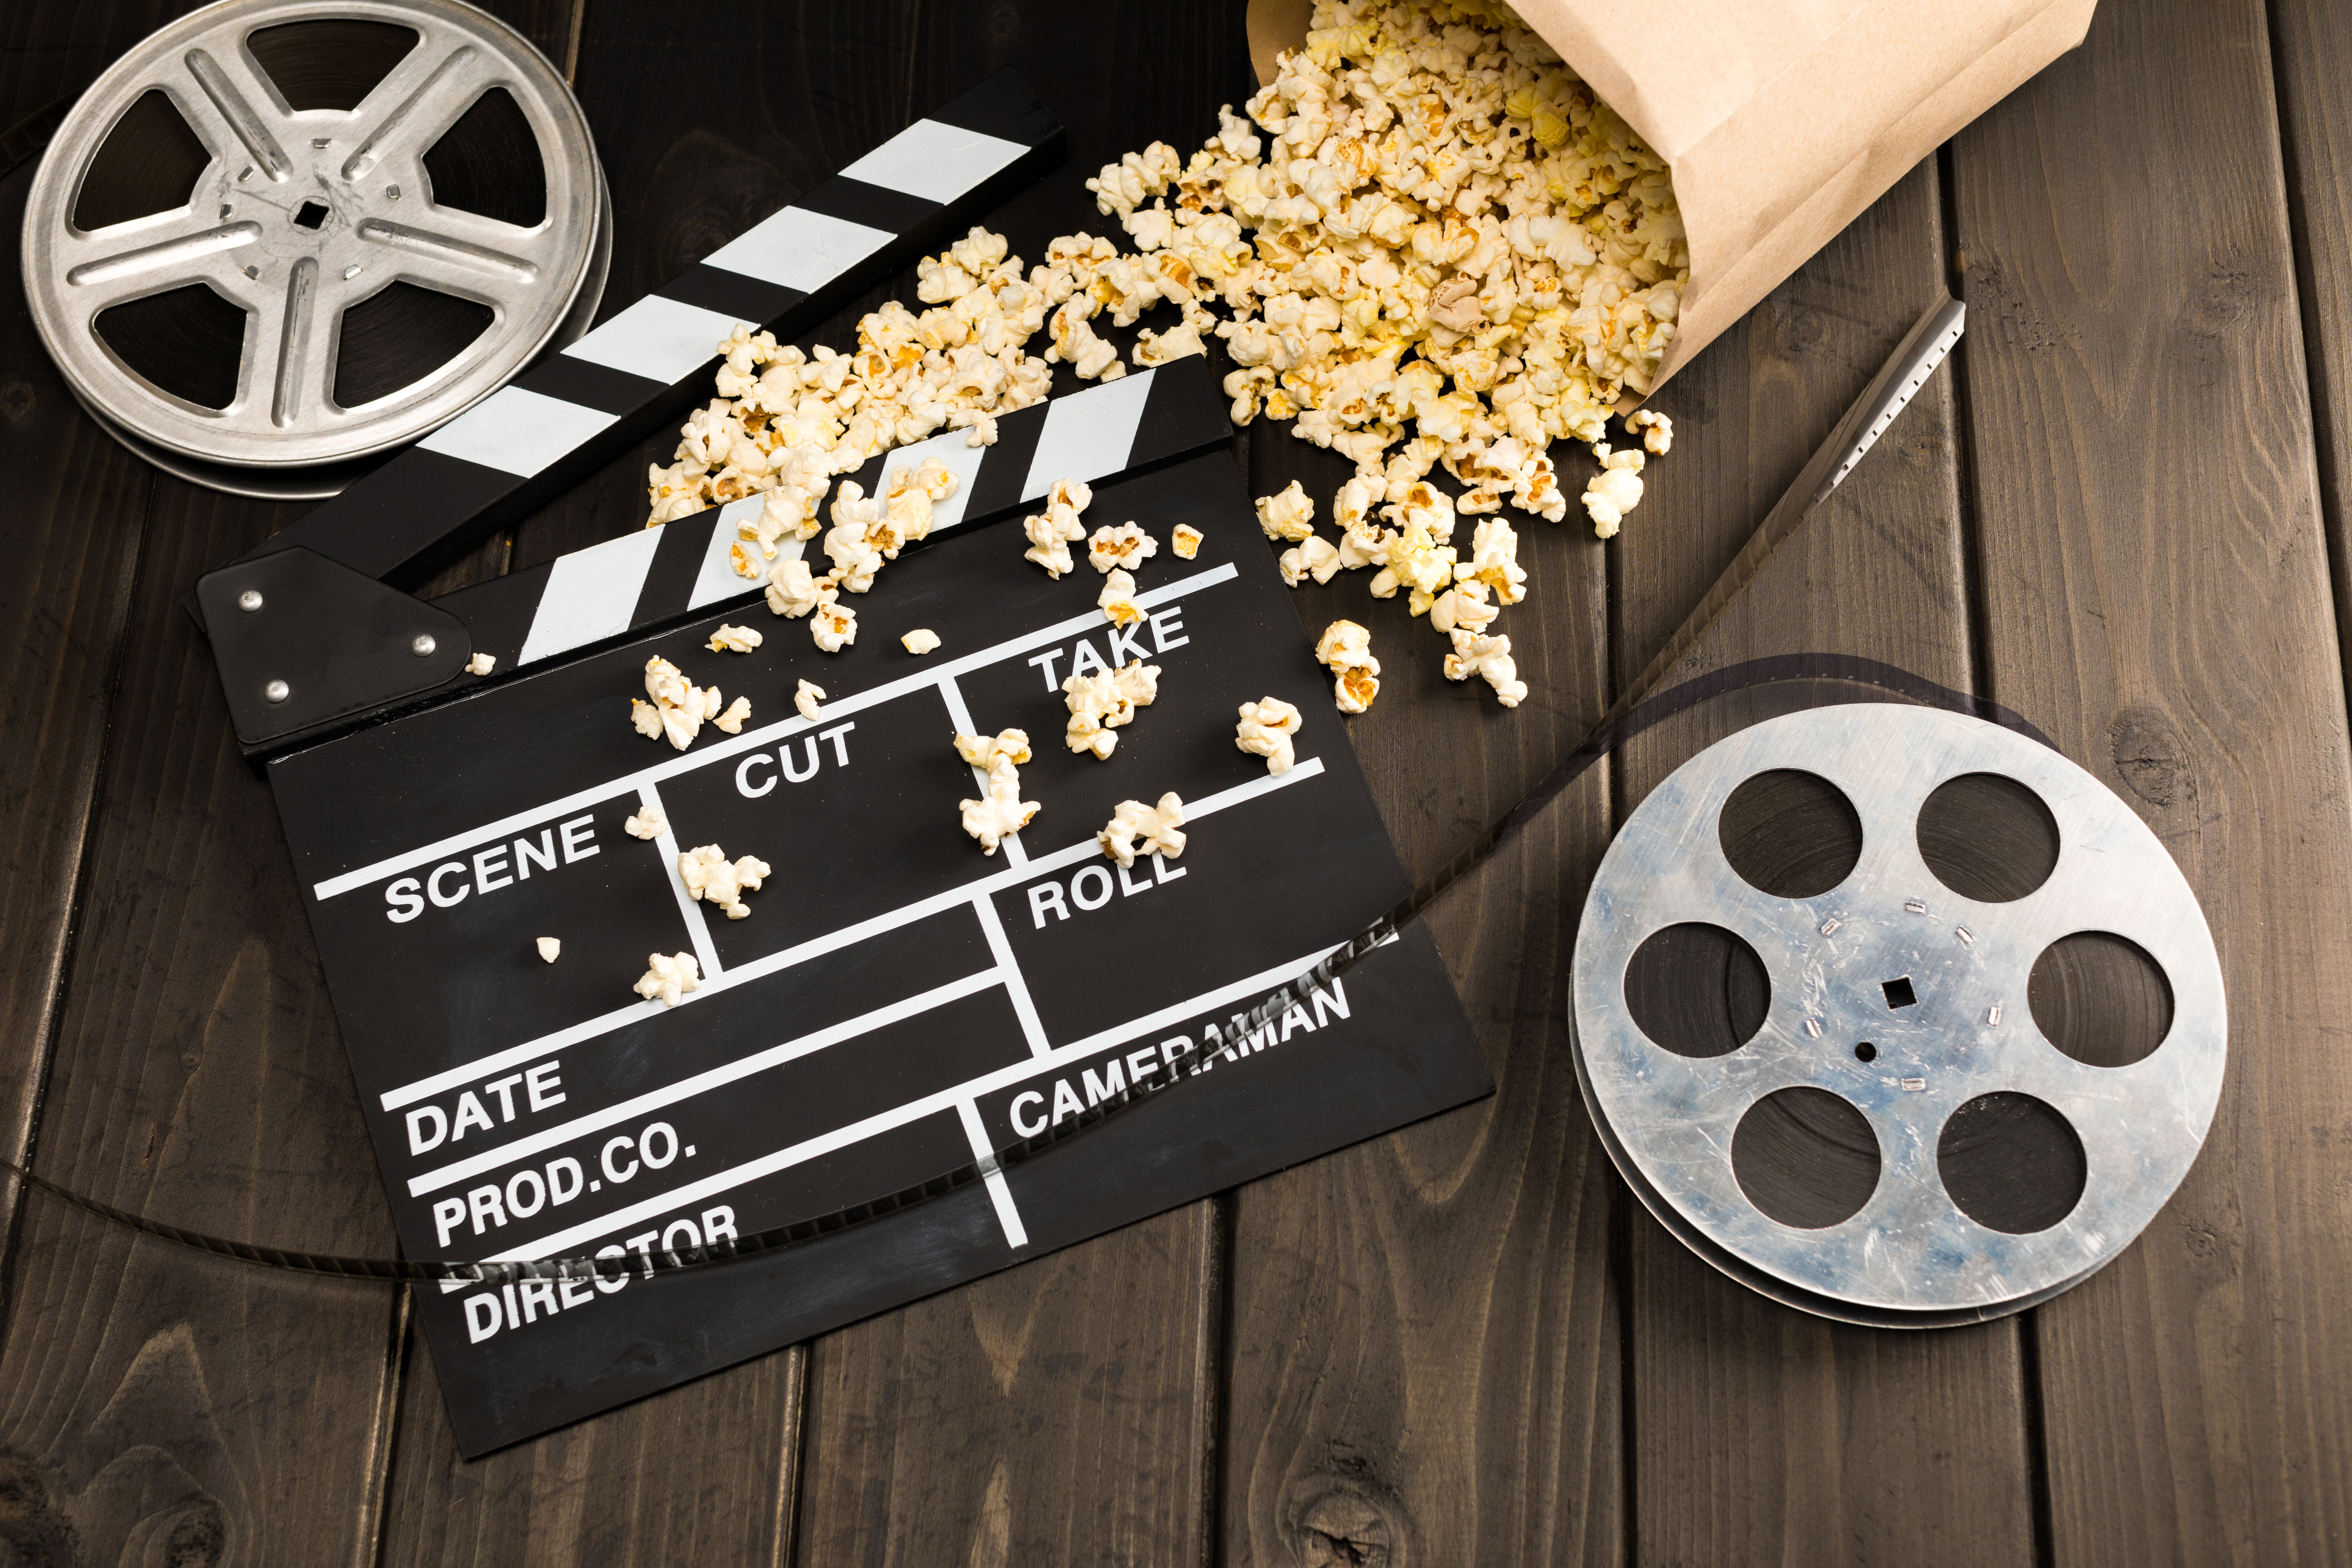 close-up-view-of-popcorn-in-paper-container-and-movie-clapper-board-on-table,-Movie-time-concept-660